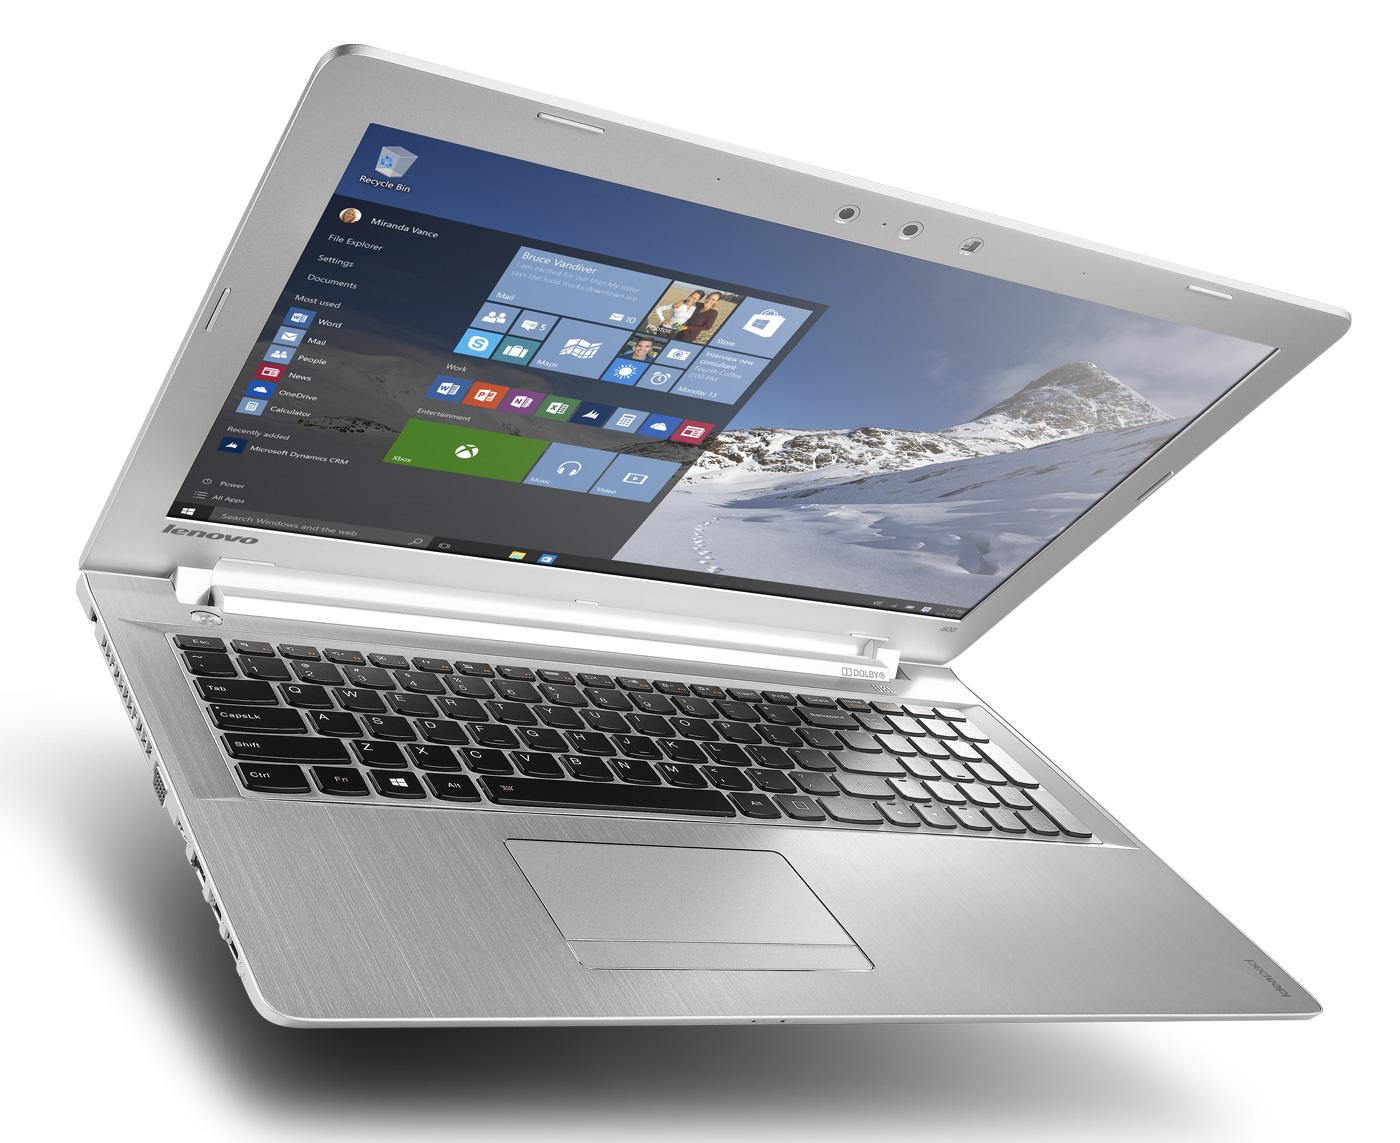 lenovo ideapad 500 15isk core i7 les meilleurs prix. Black Bedroom Furniture Sets. Home Design Ideas